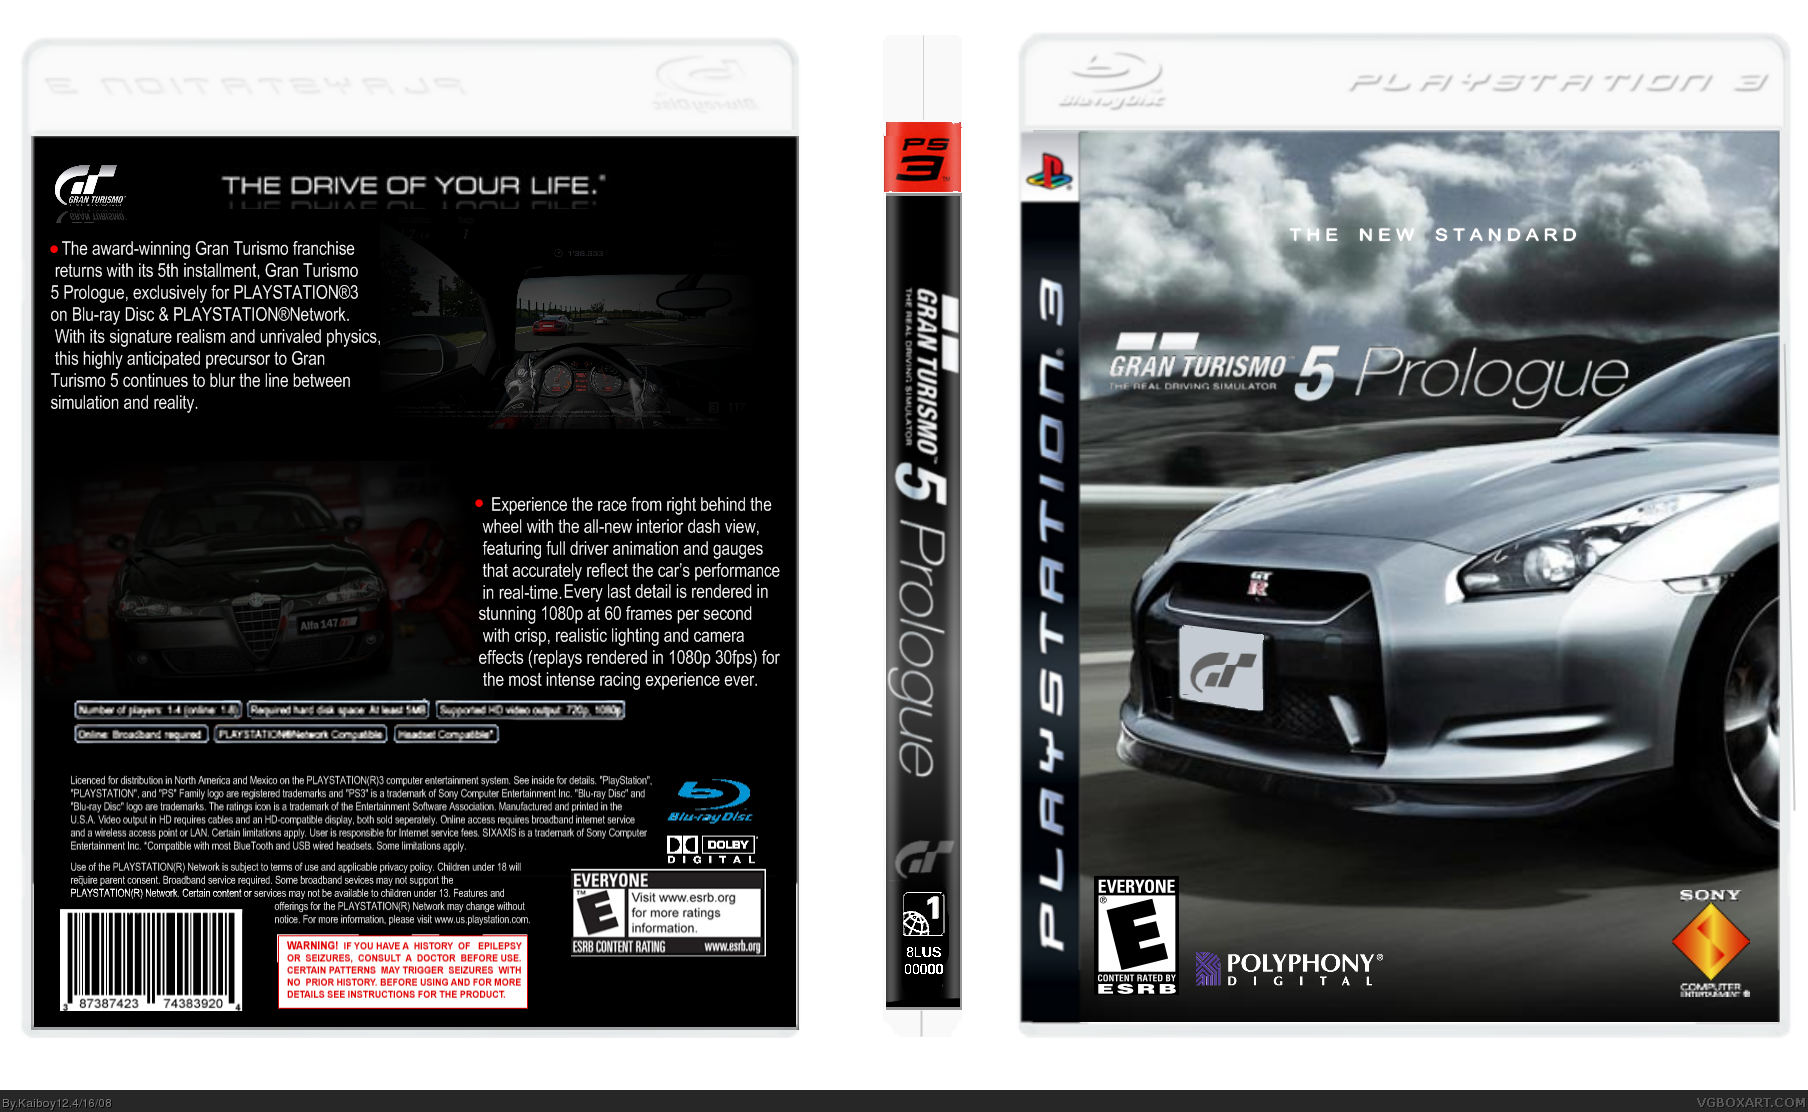 gran turismo 5 prologue playstation 3 box art cover by. Black Bedroom Furniture Sets. Home Design Ideas